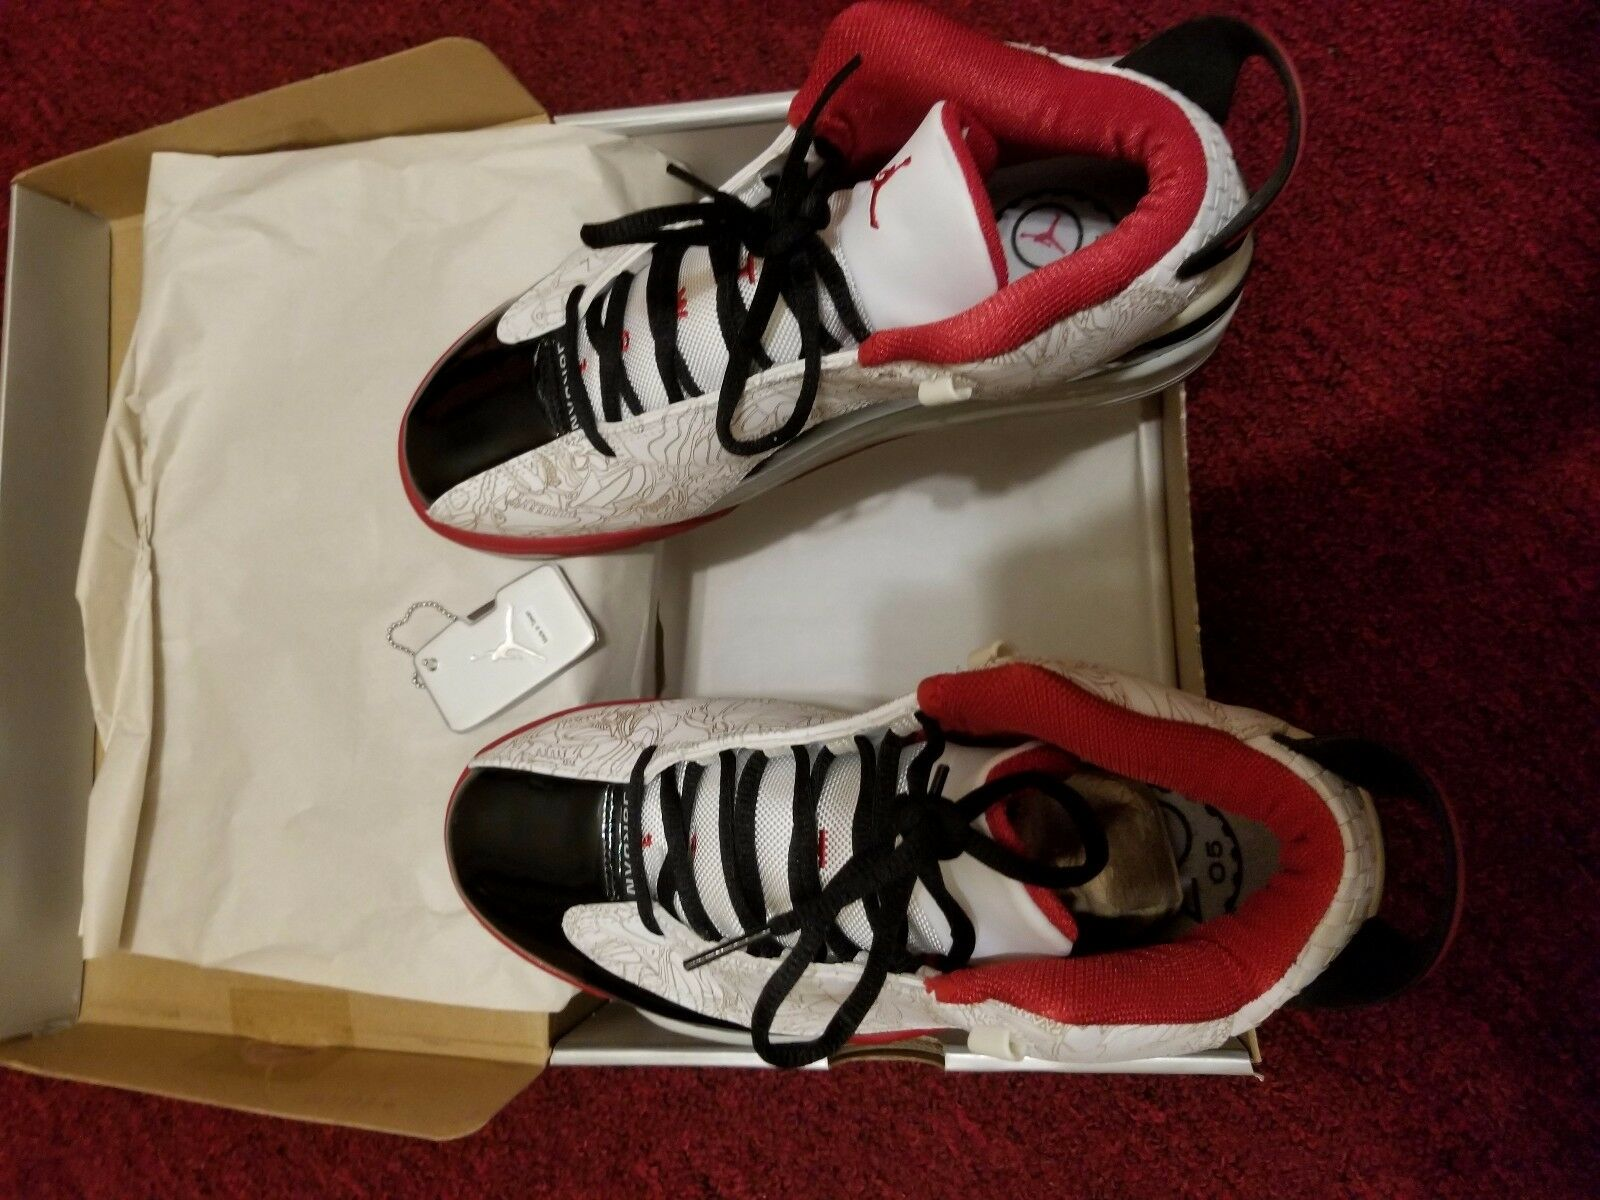 2006 NIKE AIR JORDAN DUB ZERO RED VNDS 8.5 311046-103 OG RETRO MAX Brand discount New shoes for men and women, limited time discount